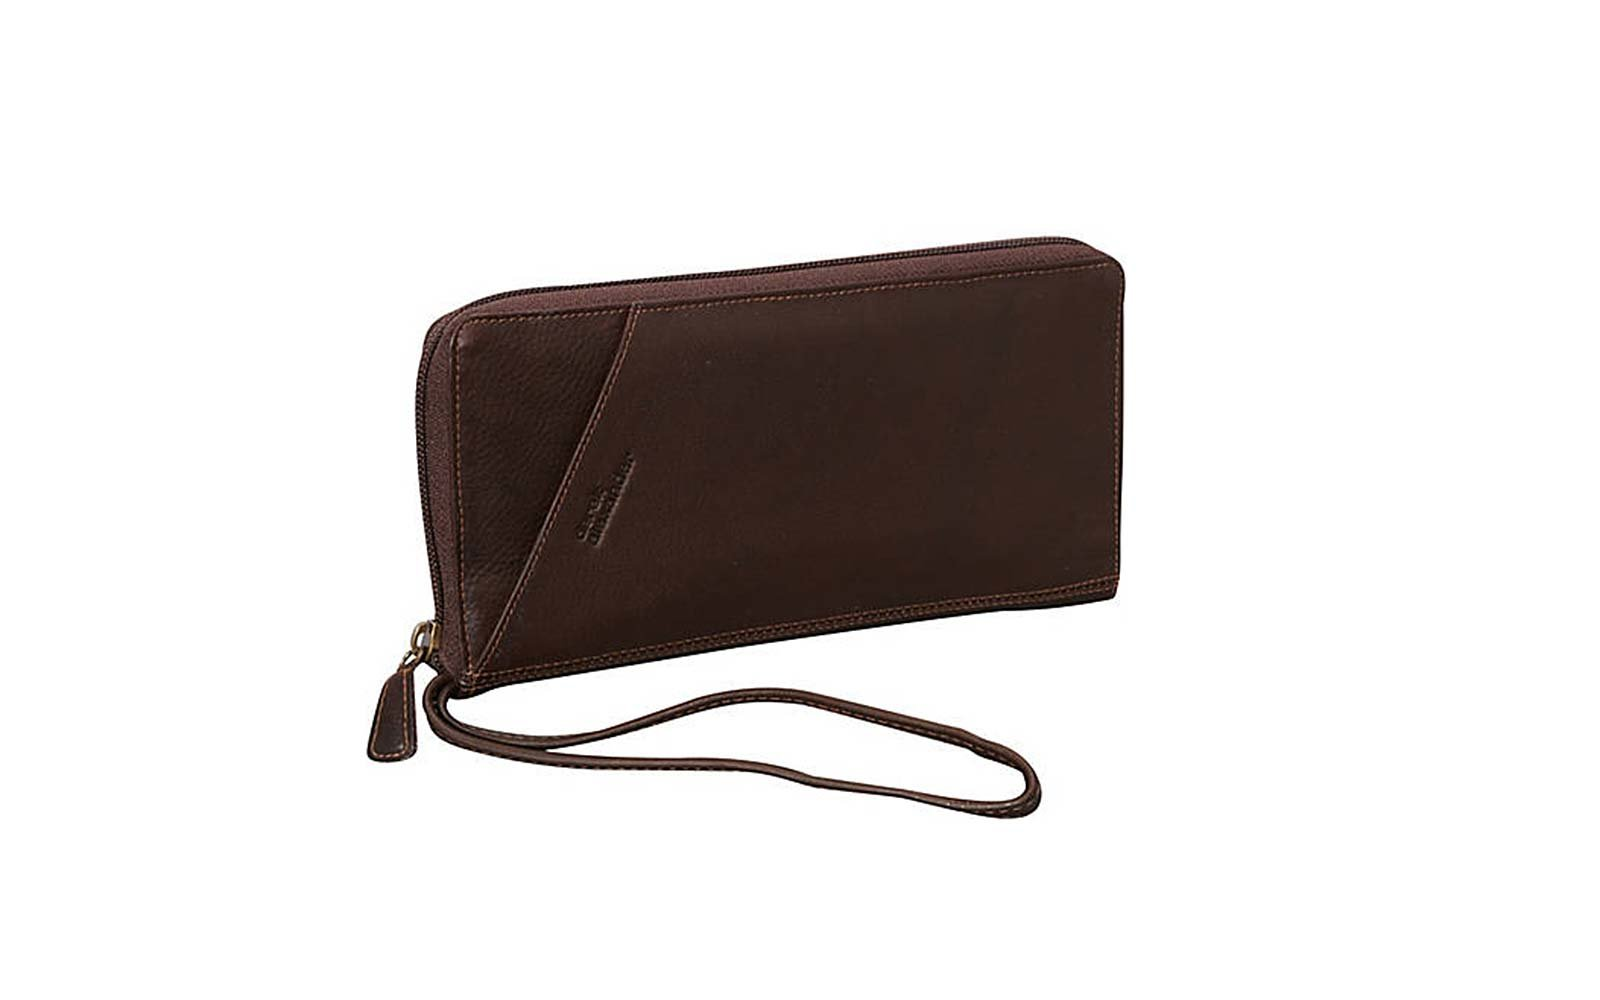 Derek Alexander Travel Wallet